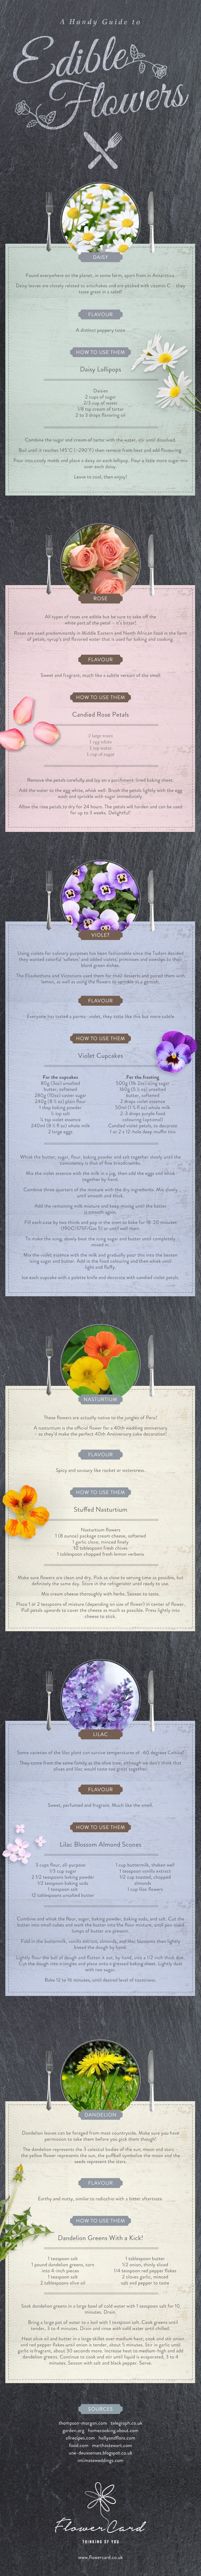 original_how-to-use-edible-flowers